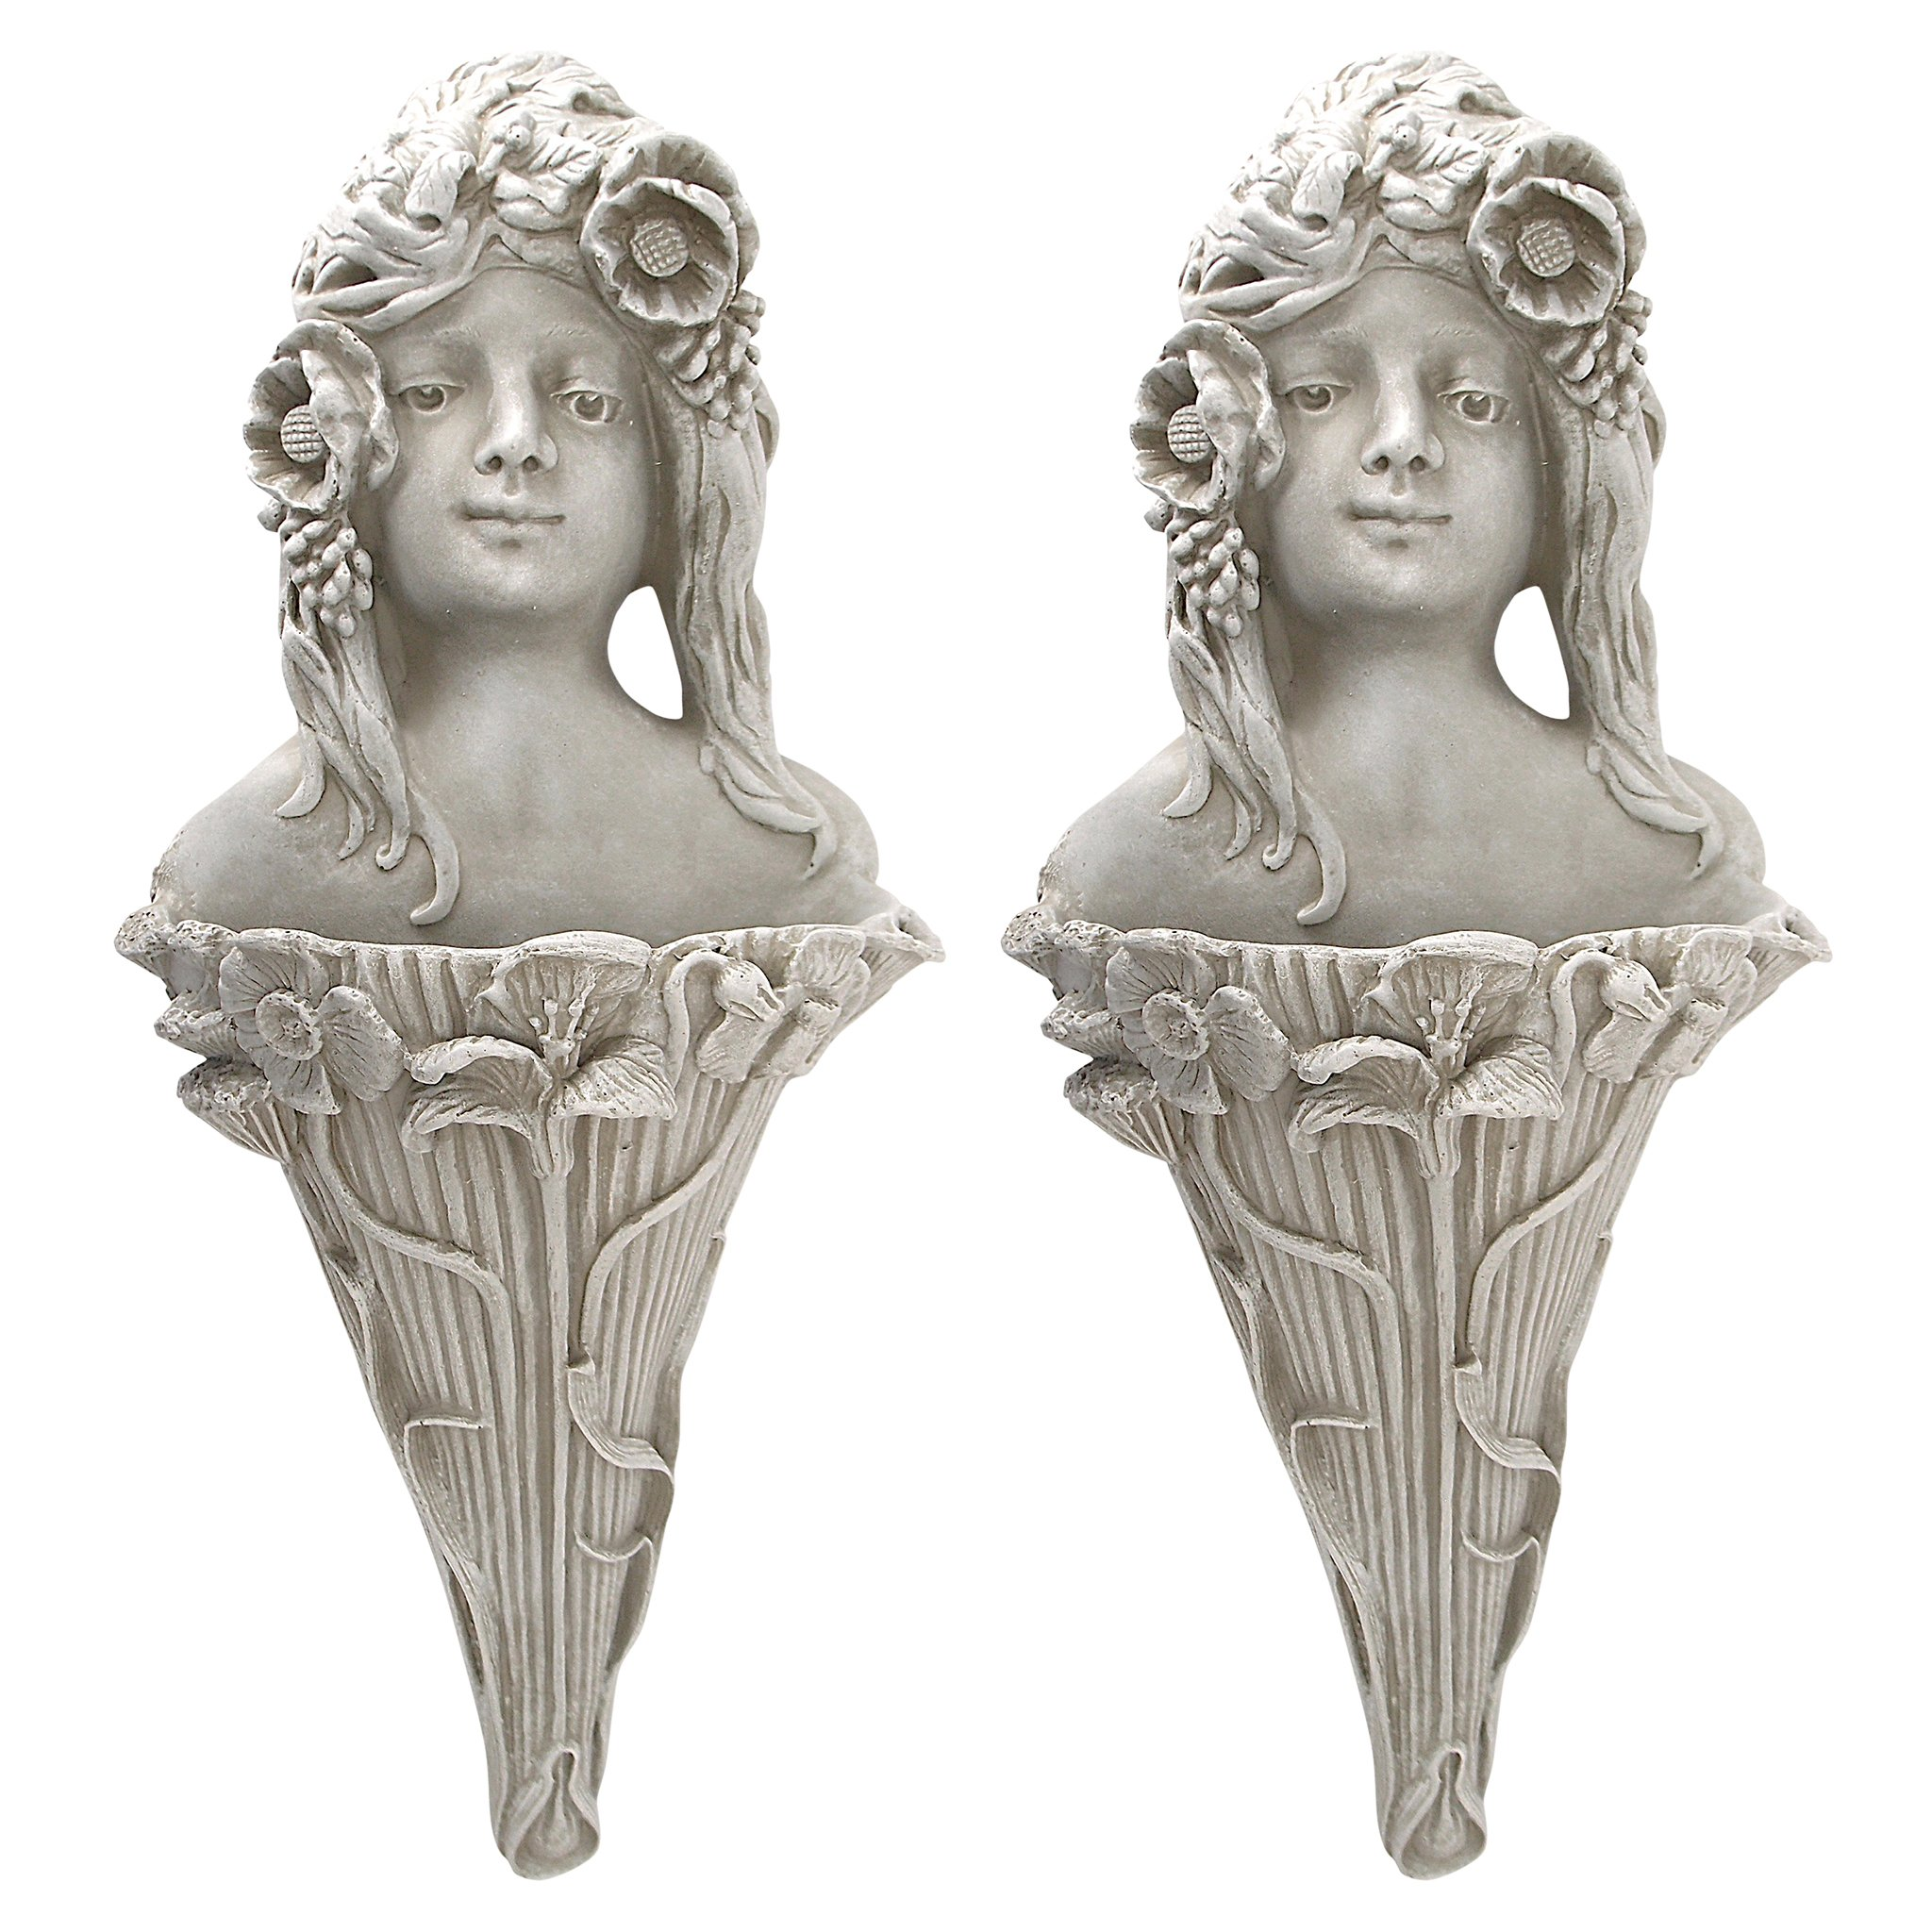 Design Toscano Art Nouveau Poppy Princess Wall Pocket Planter Sculpture (Set of 2), Antique Stone by Design Toscano